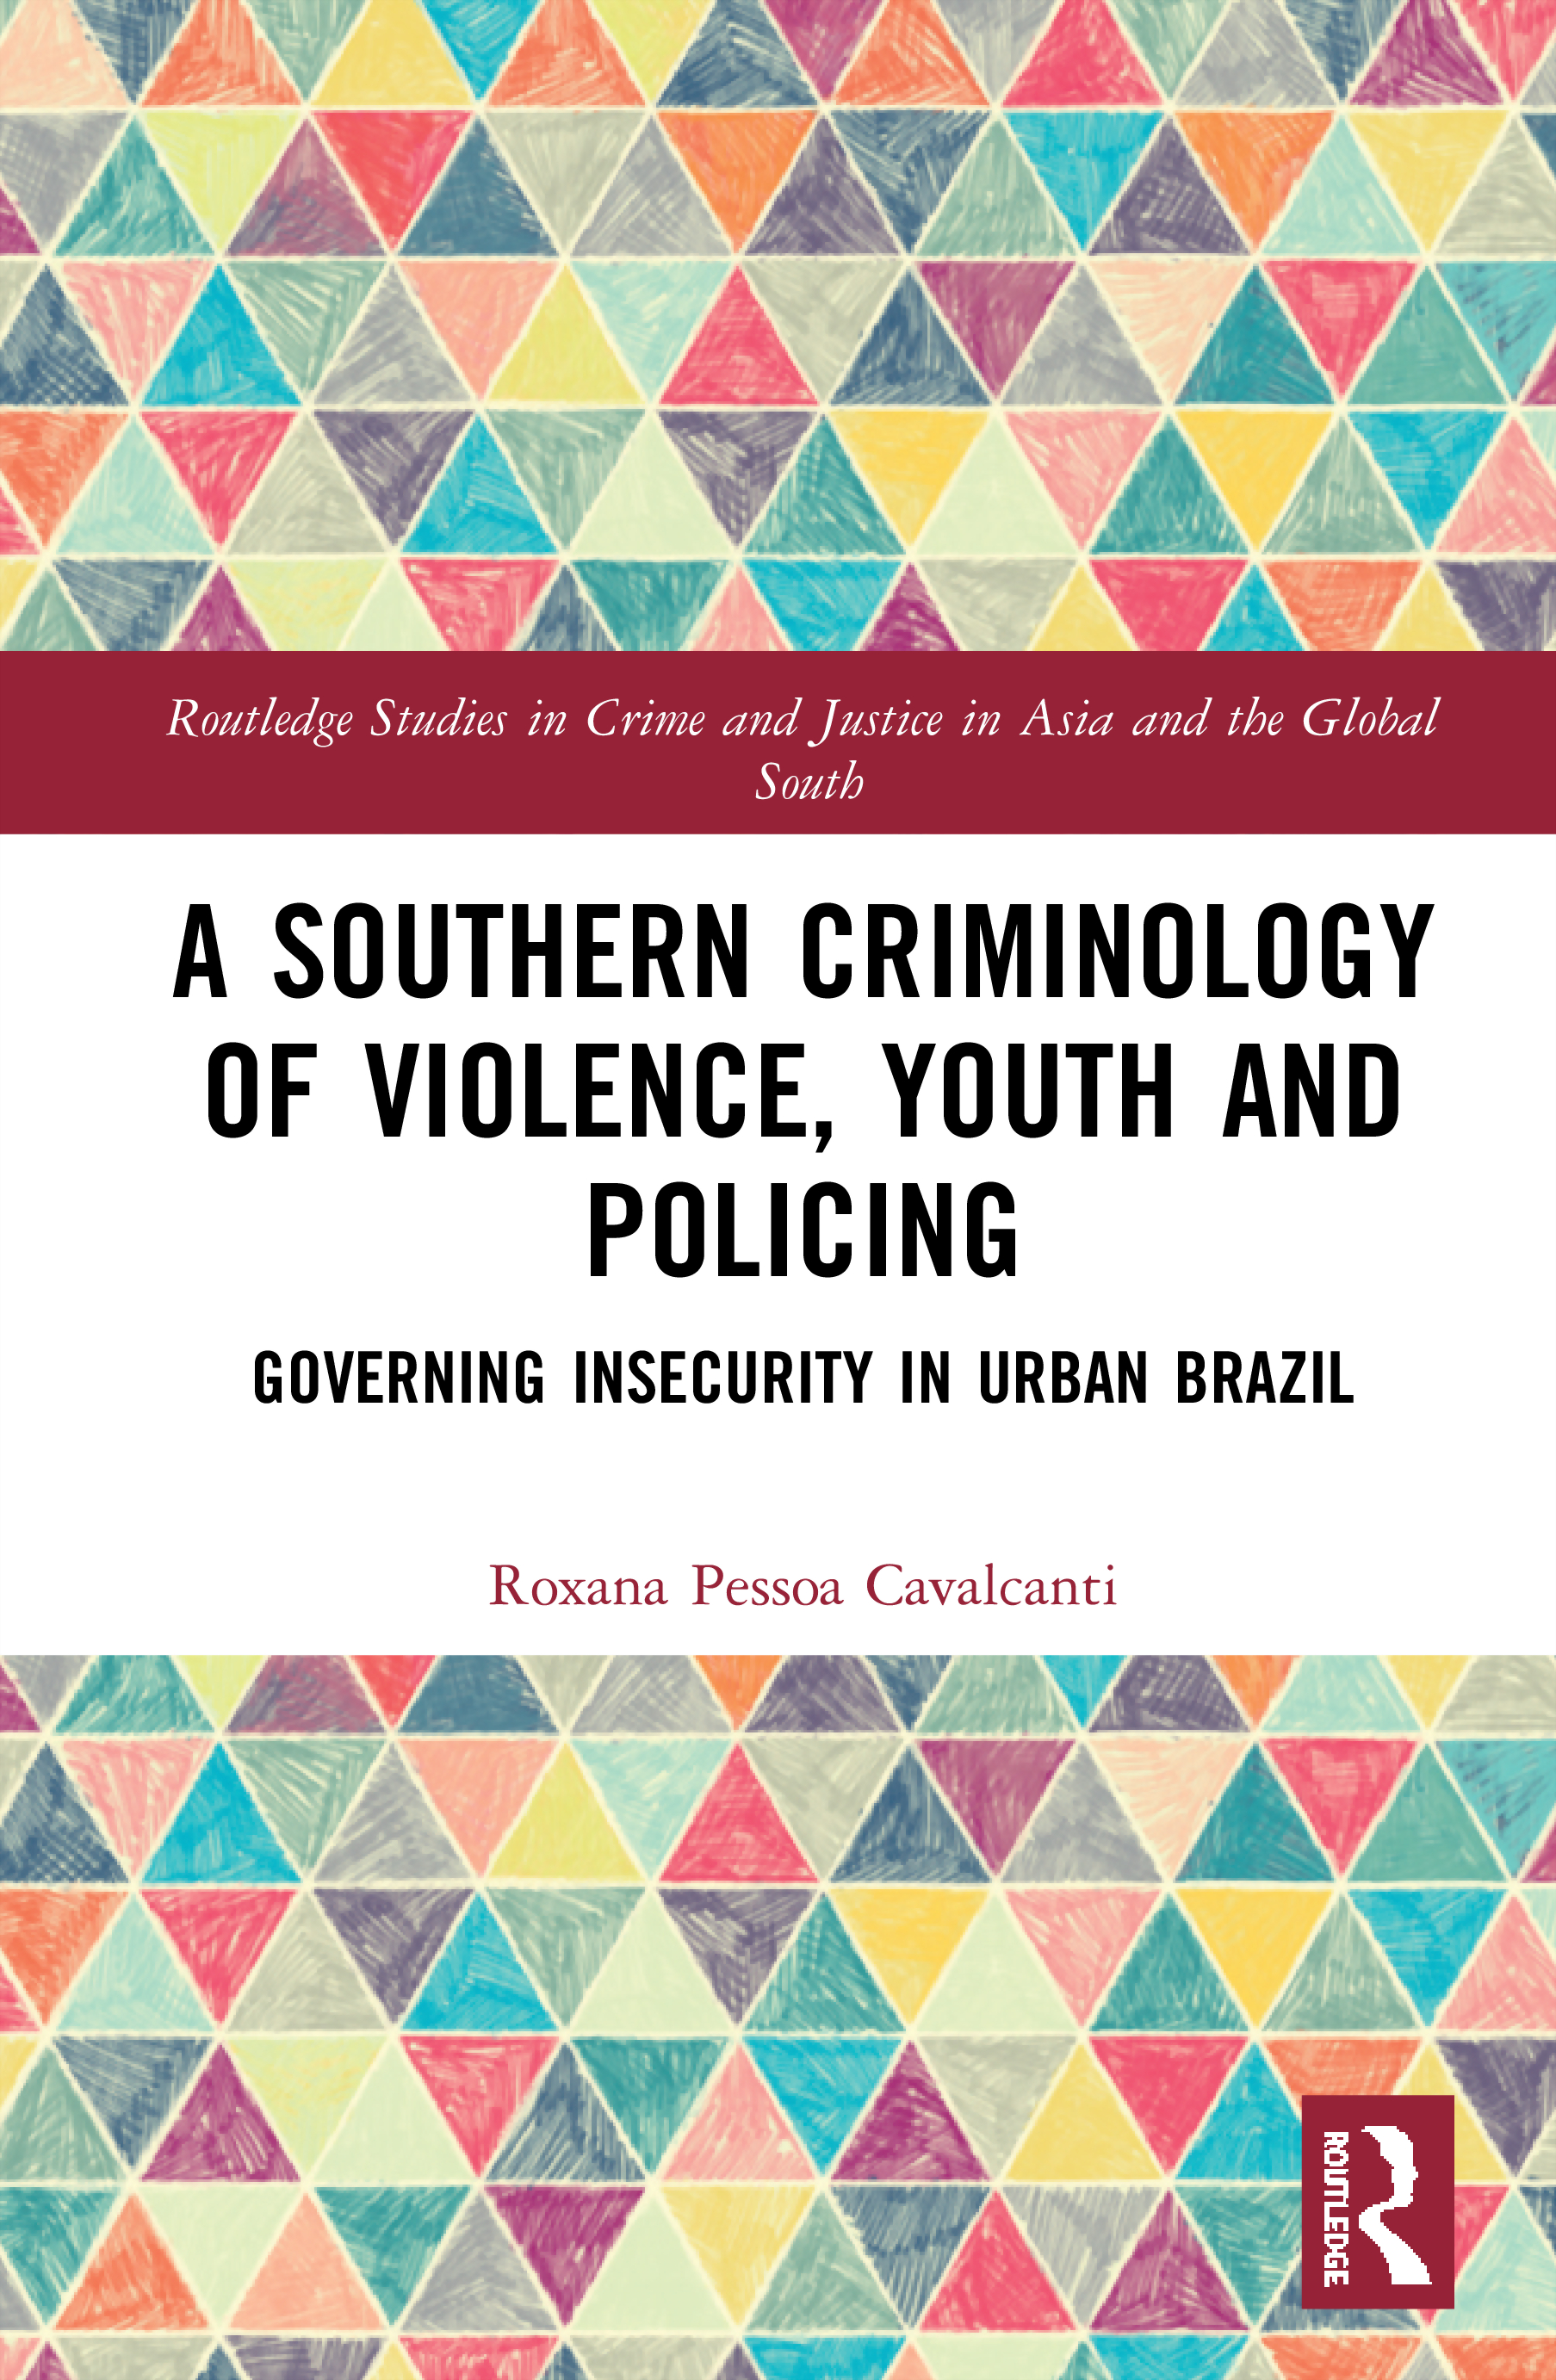 A Southern Criminology of Violence, Youth and Policing: Governing Insecurity in Urban Brazil book cover